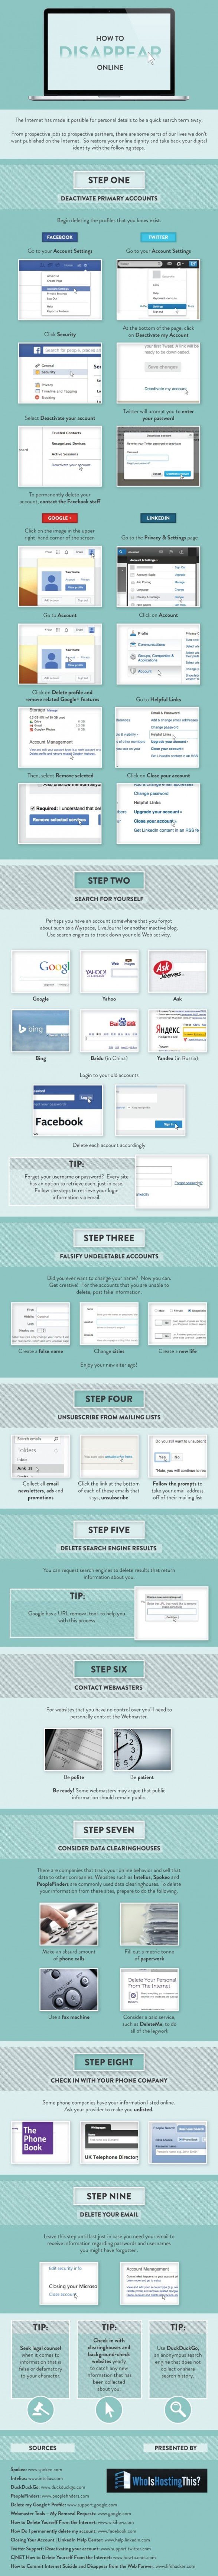 hide yourself from internet -how-to-disappear-online-infographic